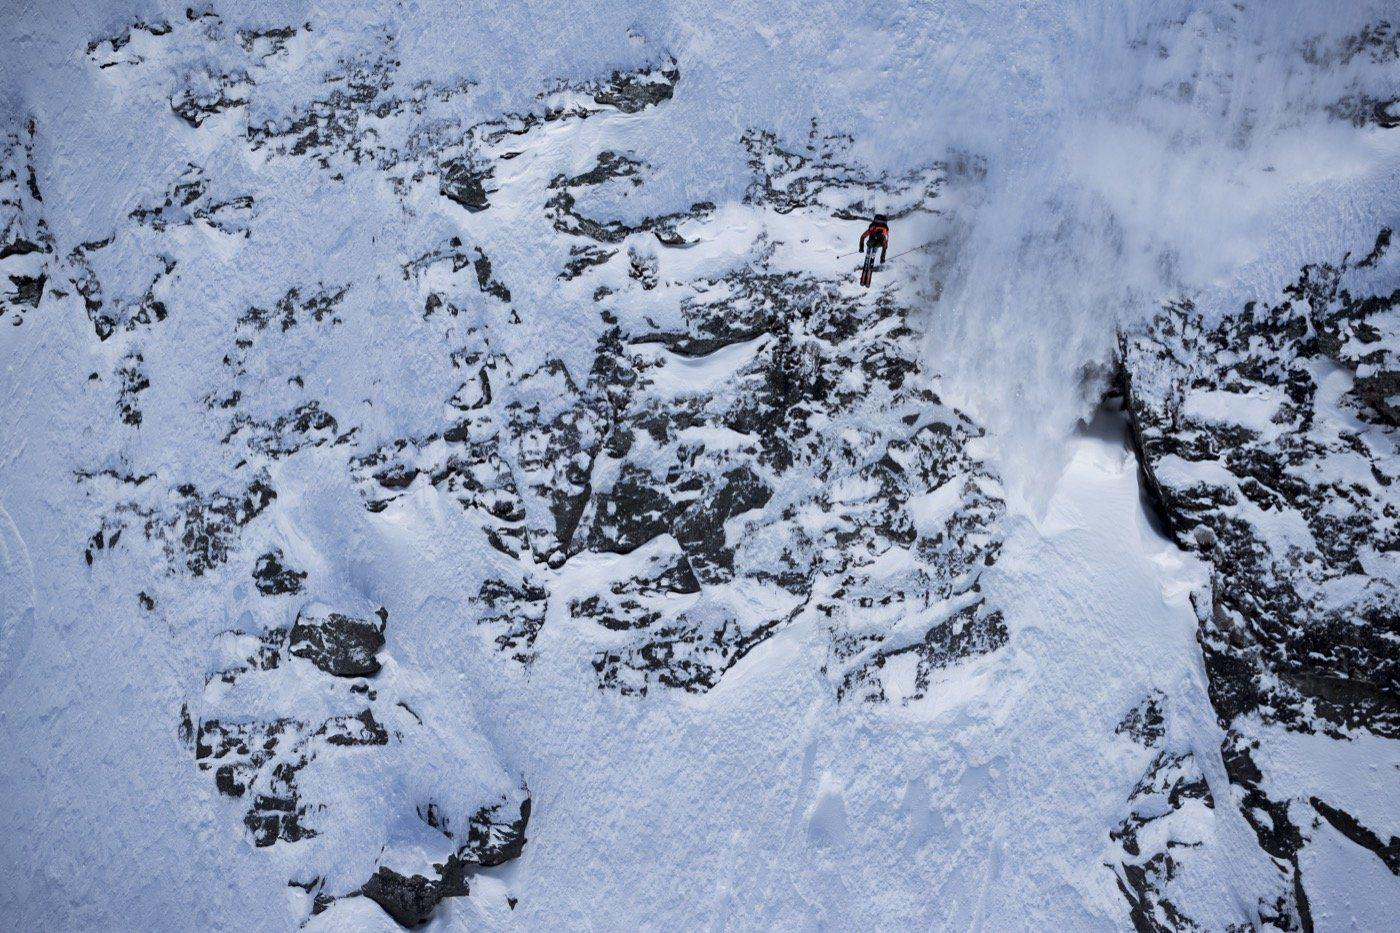 Saut de barre rocheuse pendant le freeride world tour.